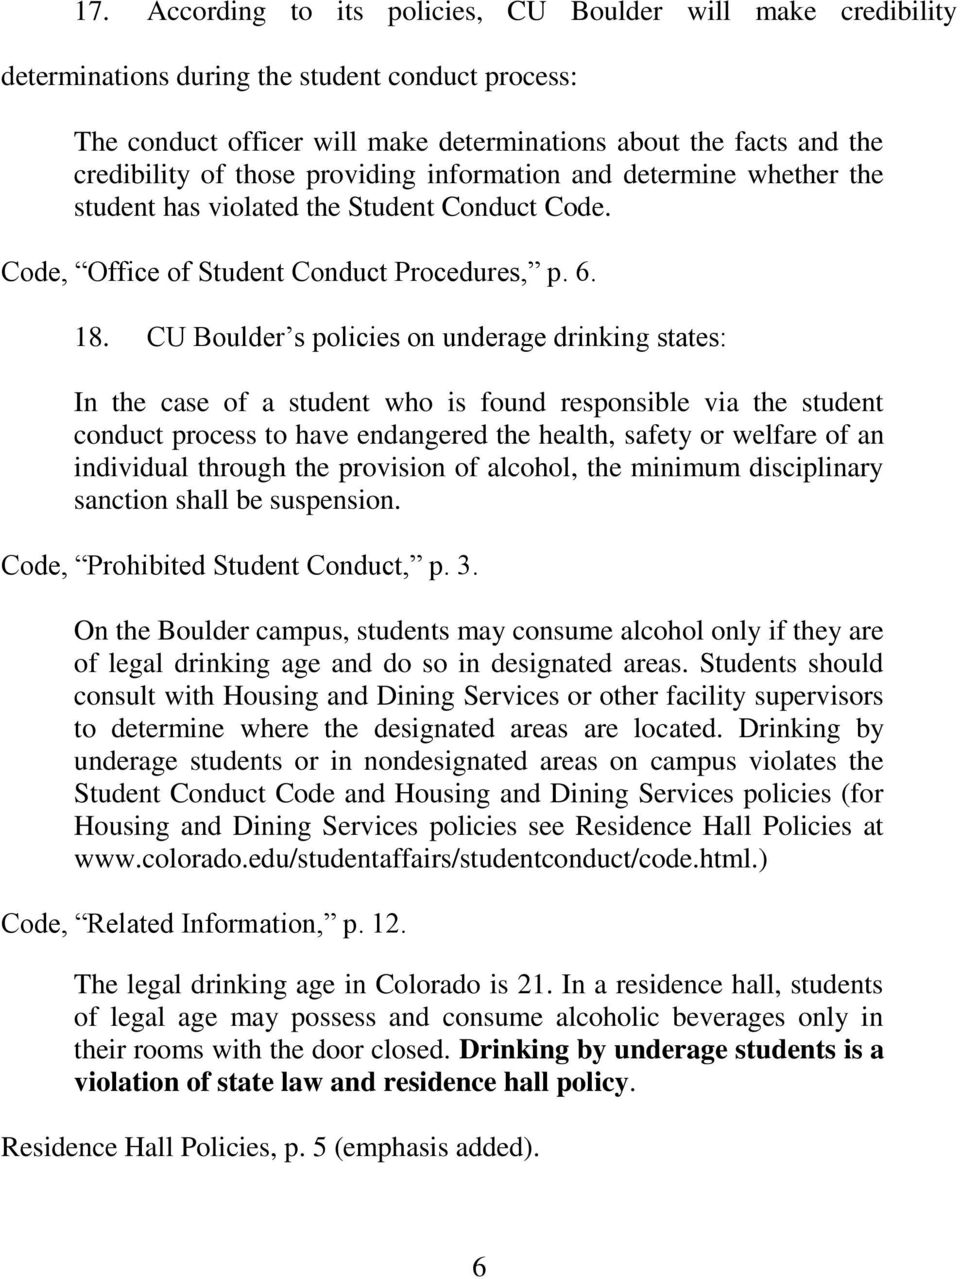 CU Boulder s policies on underage drinking states: In the case of a student who is found responsible via the student conduct process to have endangered the health, safety or welfare of an individual